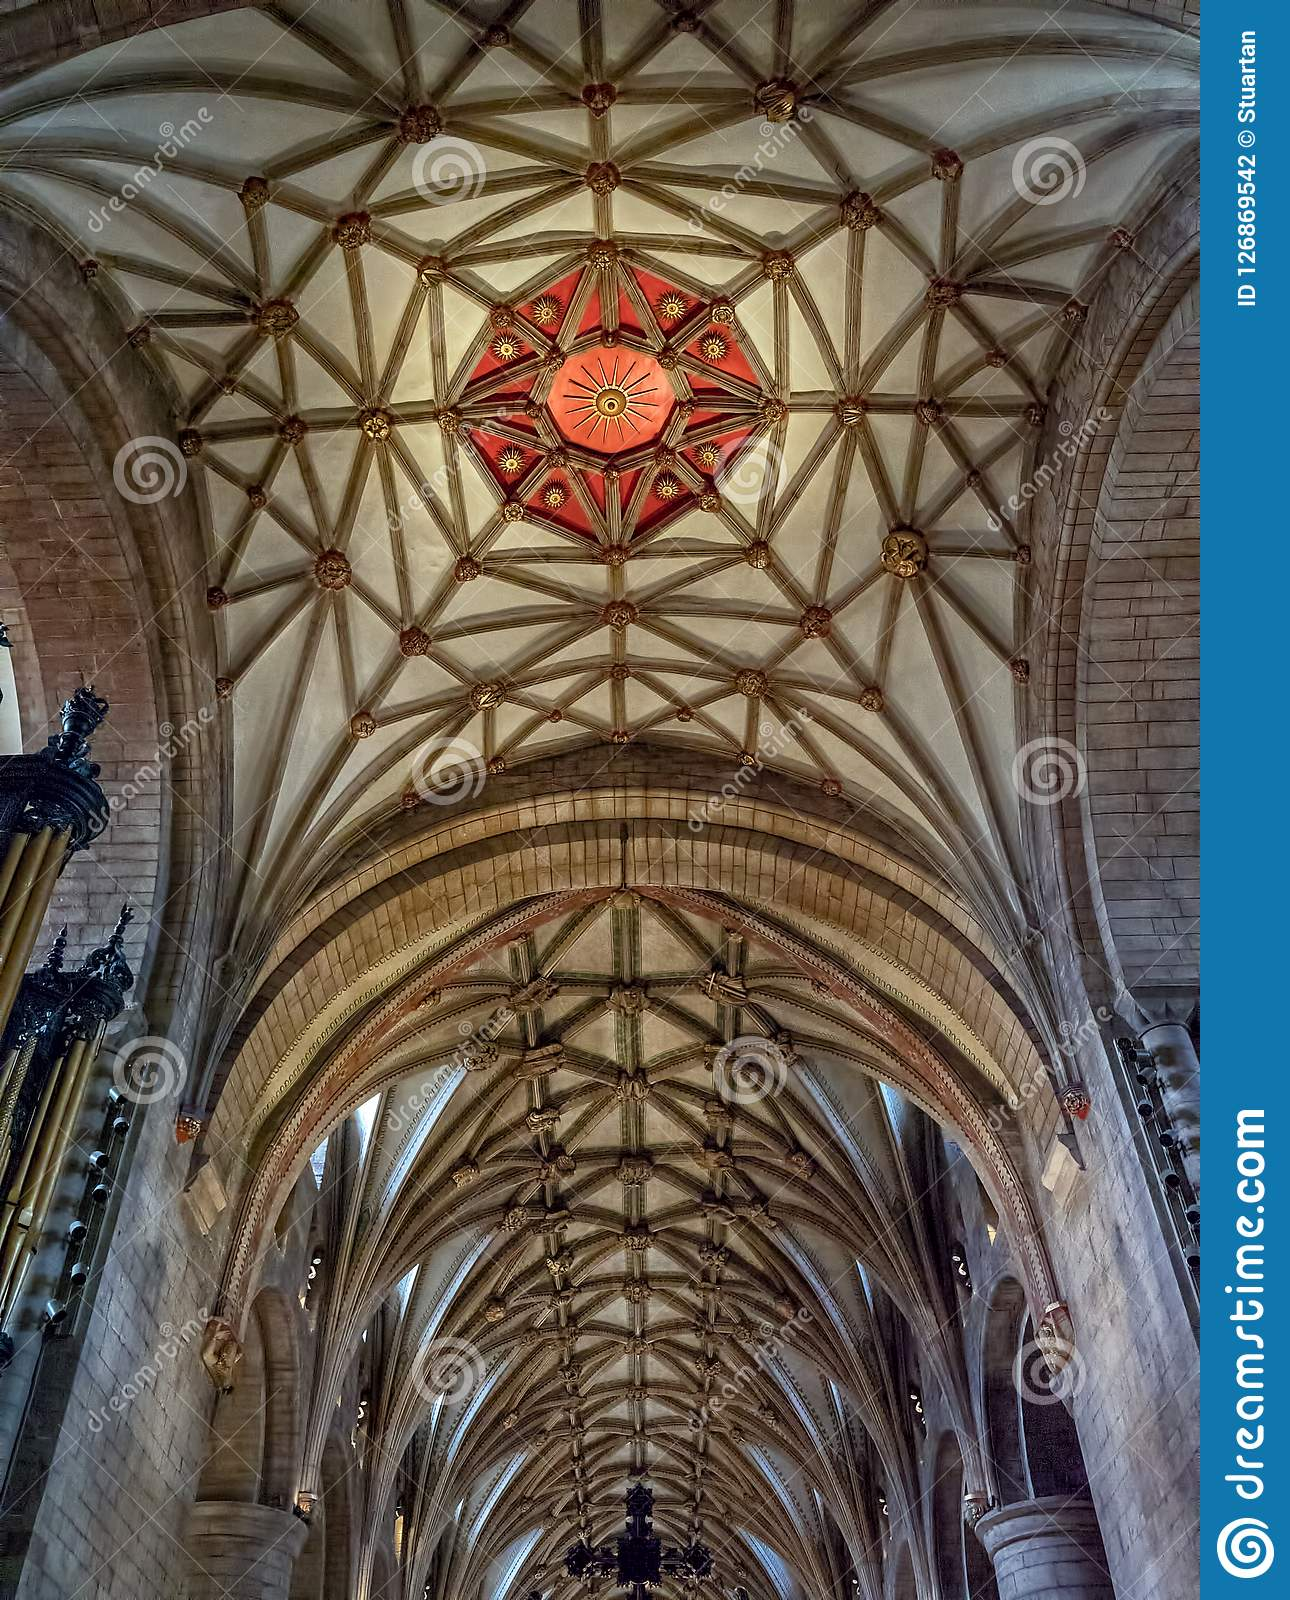 Red Sun emblem, Quire ceiling, Tewkesbury Abbey, Gloucestershire, England.